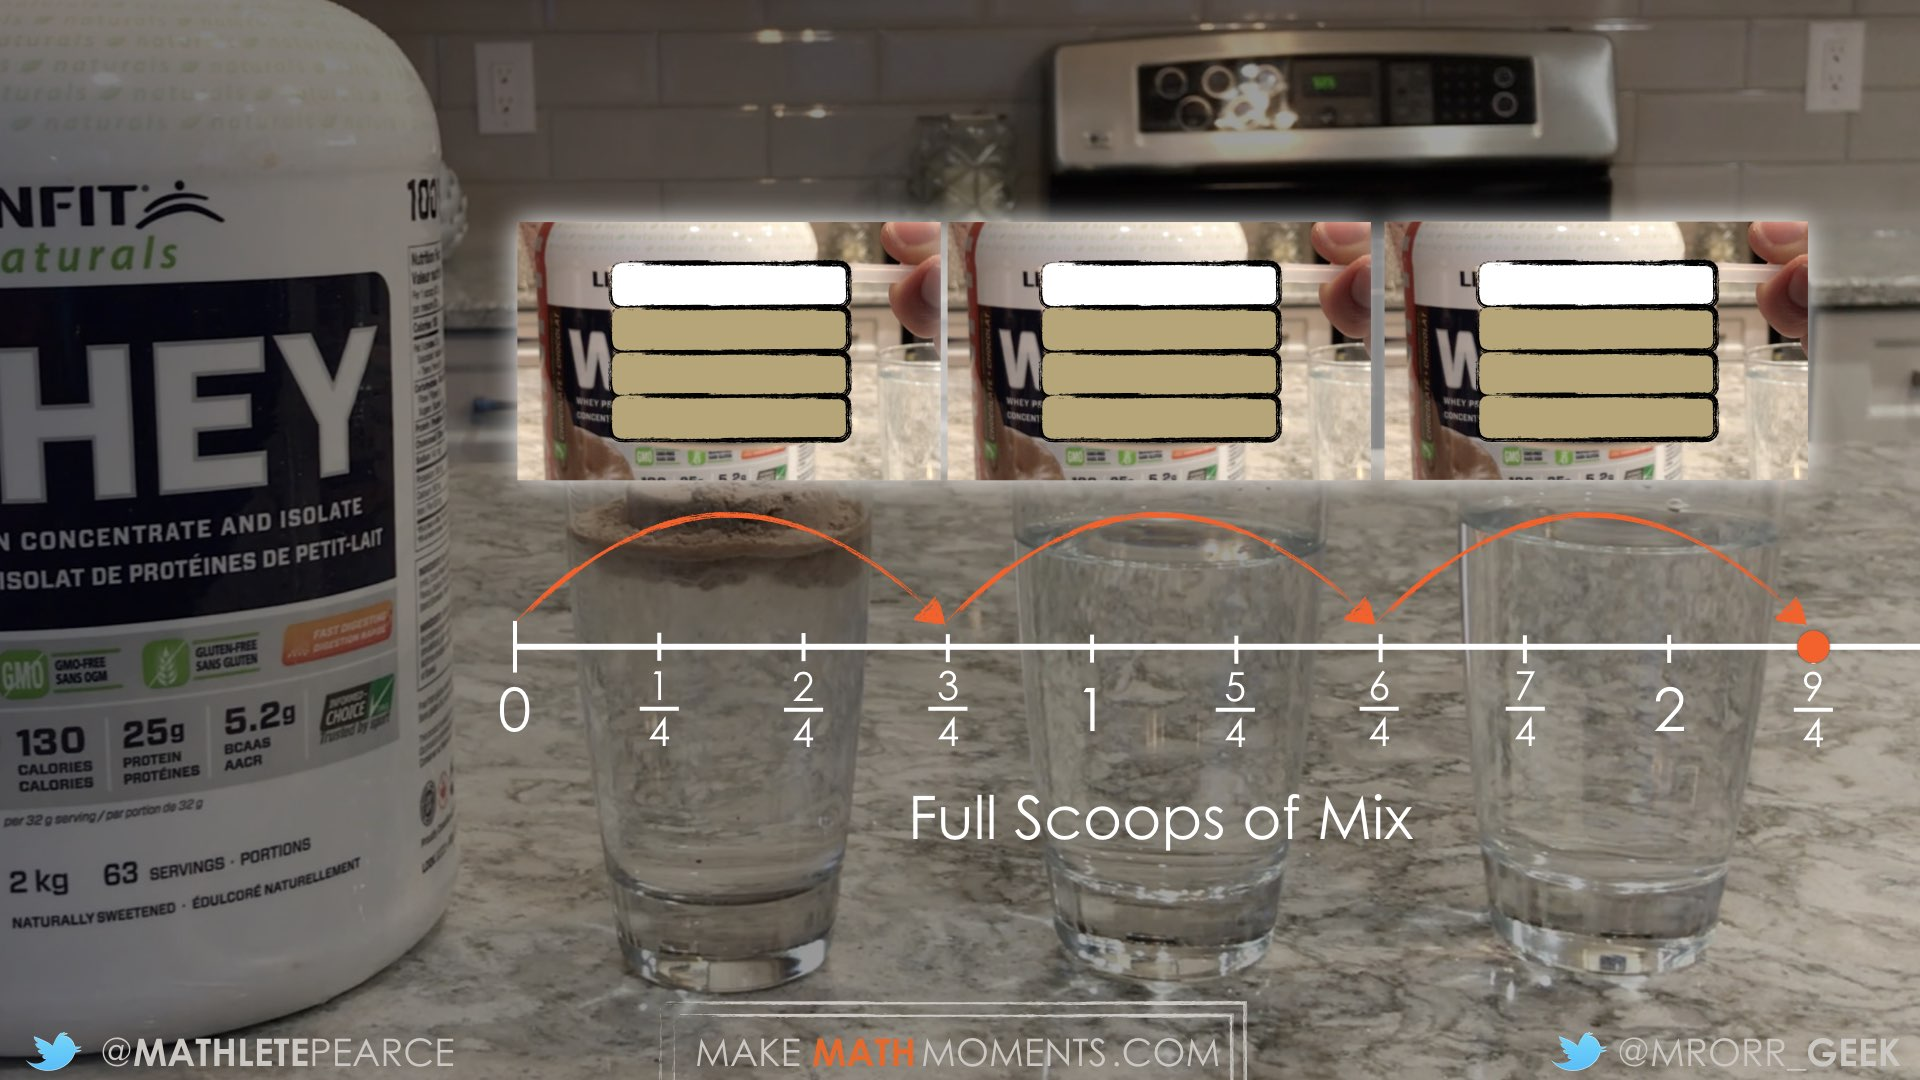 Protein Shakes 3 Act Math Task Fuel Sense-Making 2 - Number Line by Whole Glasses